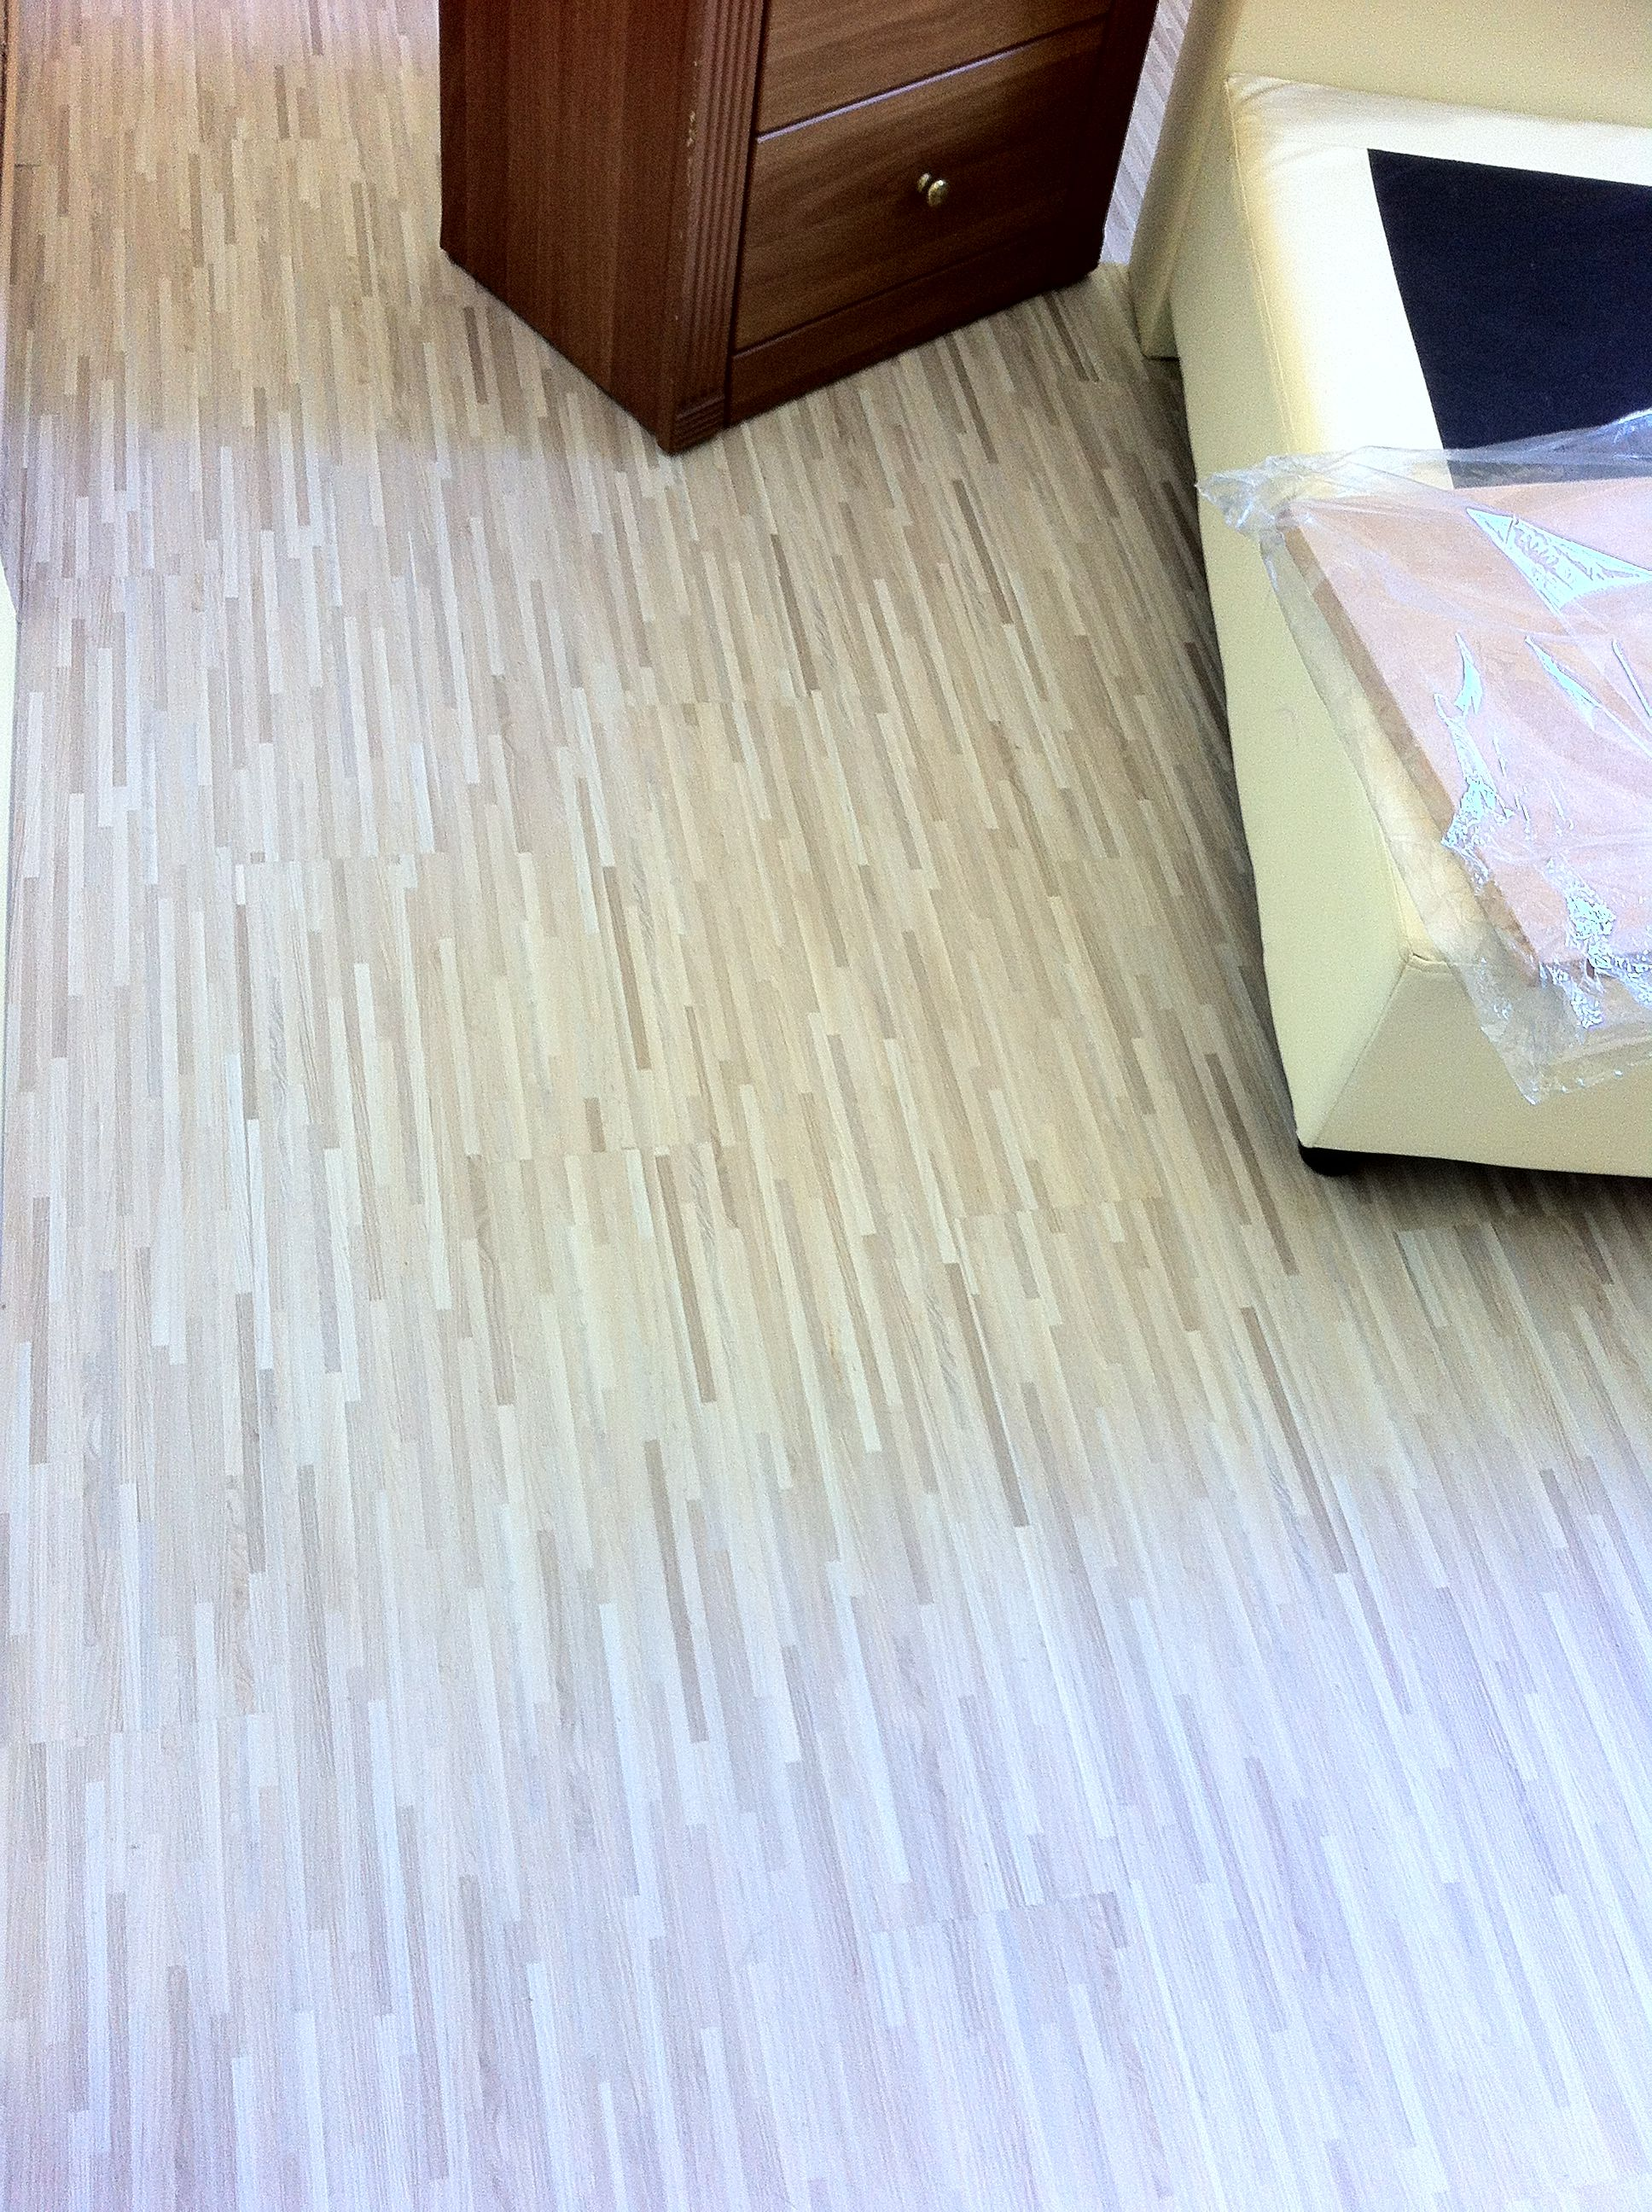 Made With Hardwood Solids With Cherry Veneers And Walnut: Vinyl Laminated Flooring Made Of 100% Recycled PVC